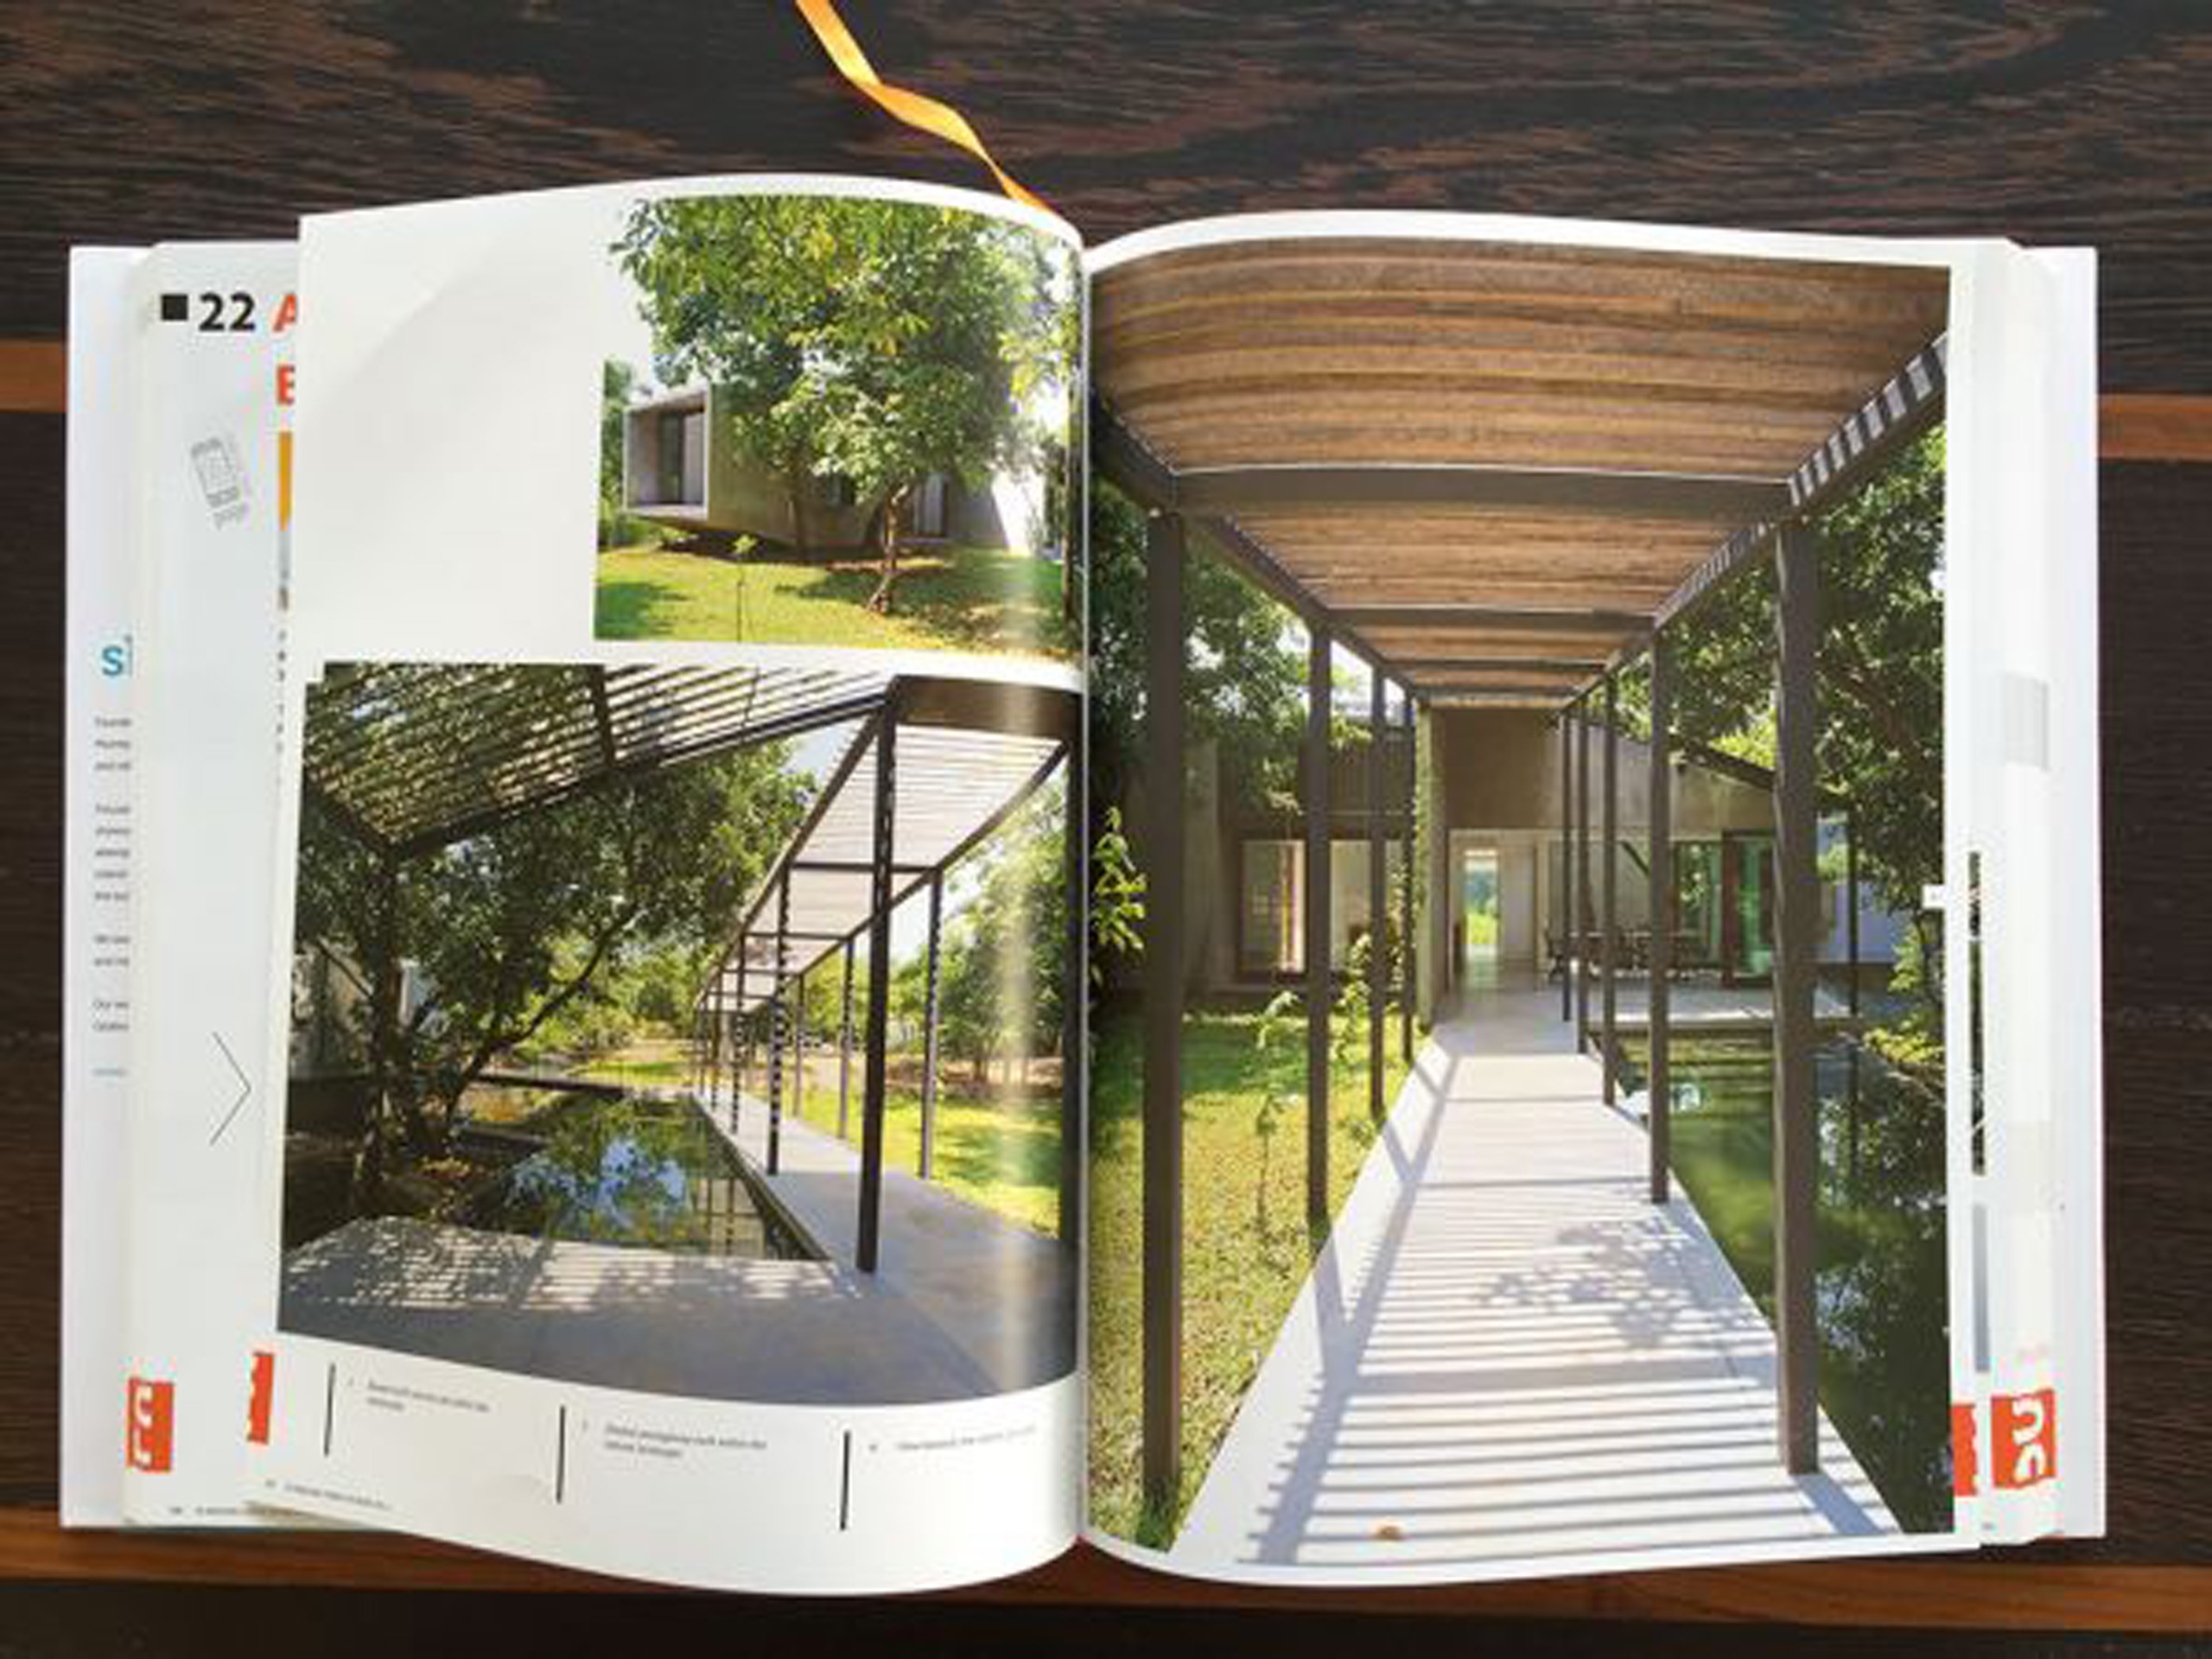 amazing homes - House on a Stream - spread